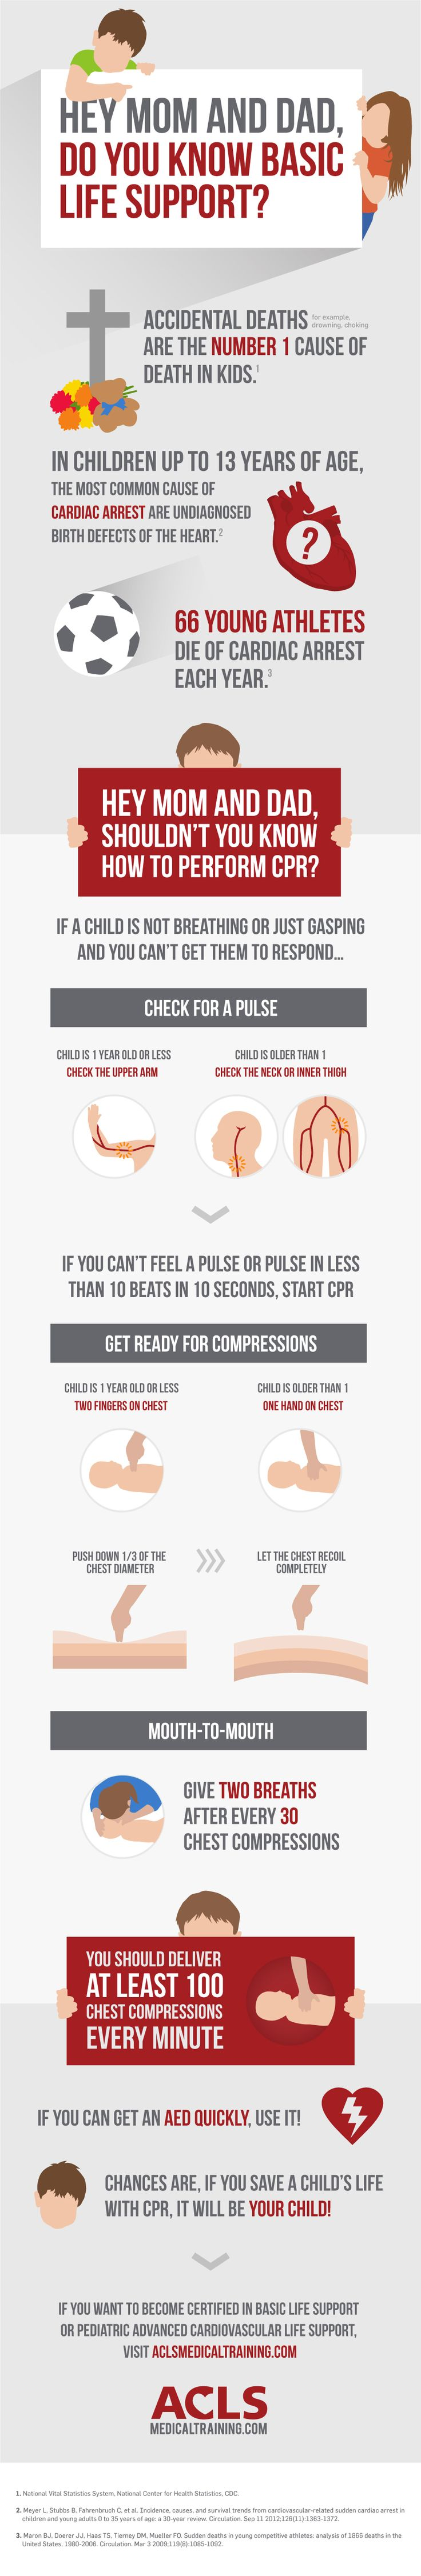 Hey Mom and Dad, Do You Know Basic Life Support? - ACLS Medical Training